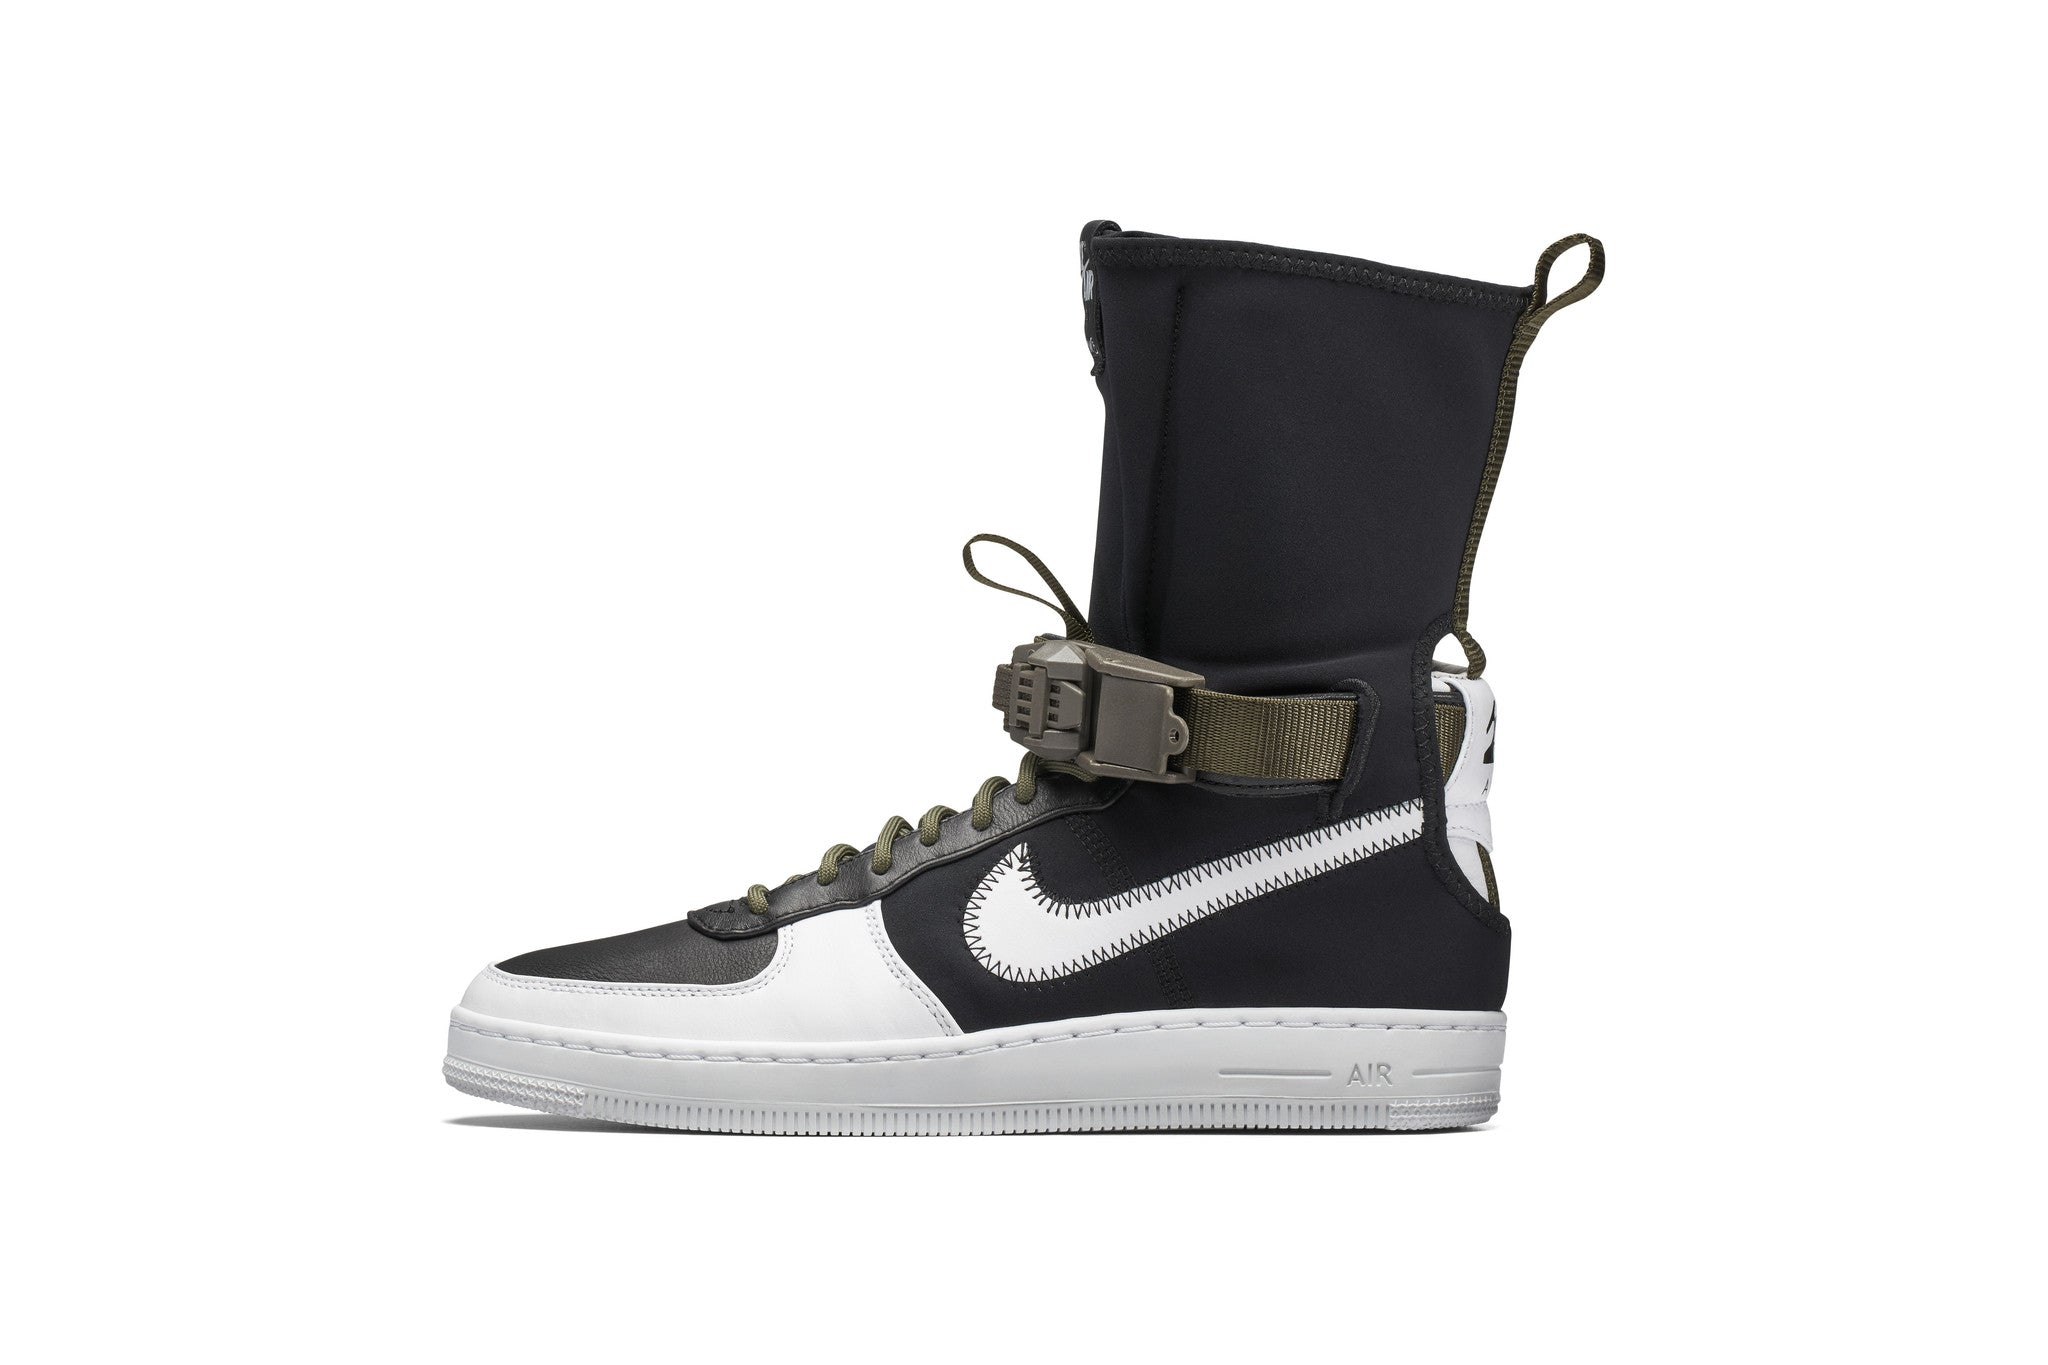 ... a lateral zipped closure, ankle strap, and graphic hit on the heel  showing the ACRONYM logo. In typical ACRONYM fashion, each of the three  colorways are ...